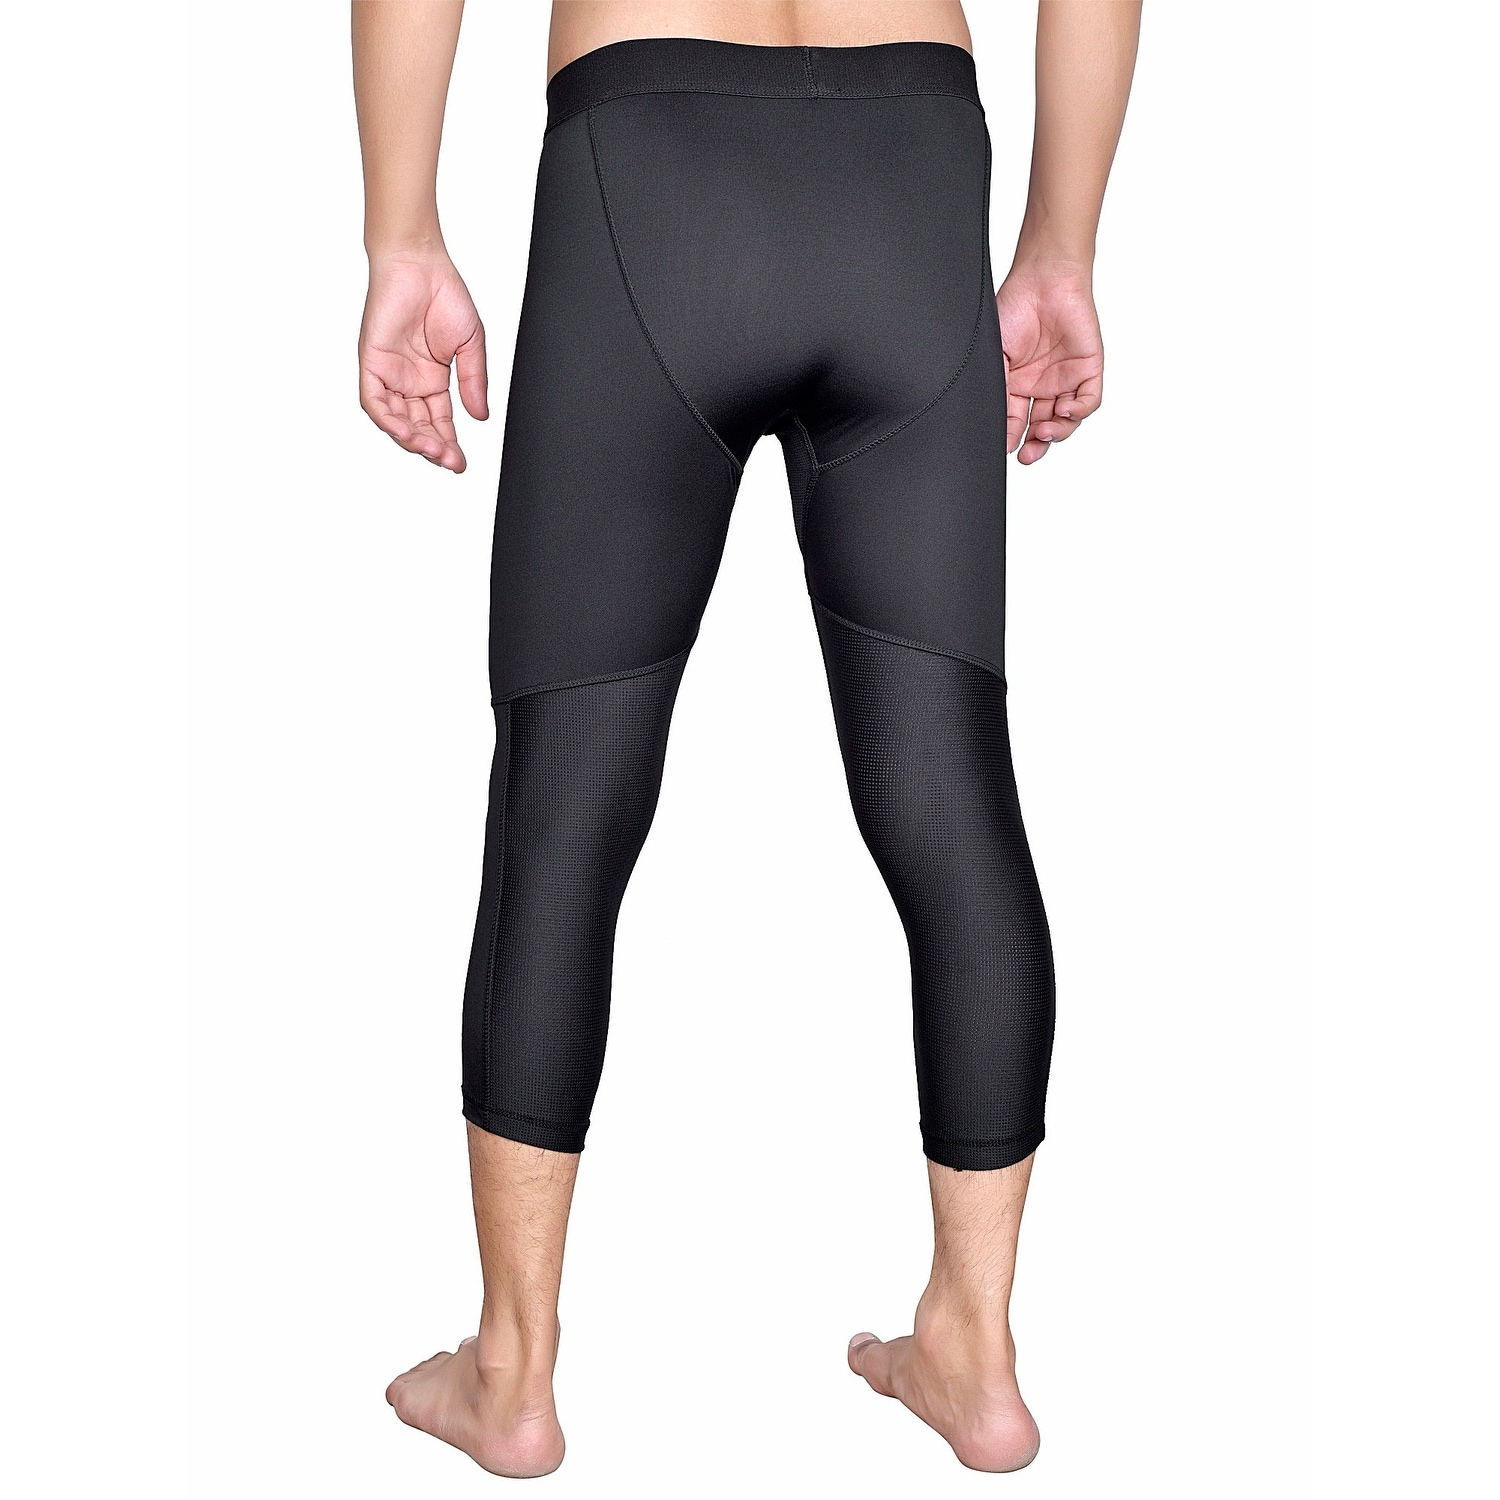 Shop Men S Cool Dry3 4base Layer Compression Pants Gym Tights Ml3 Overstock 22996721